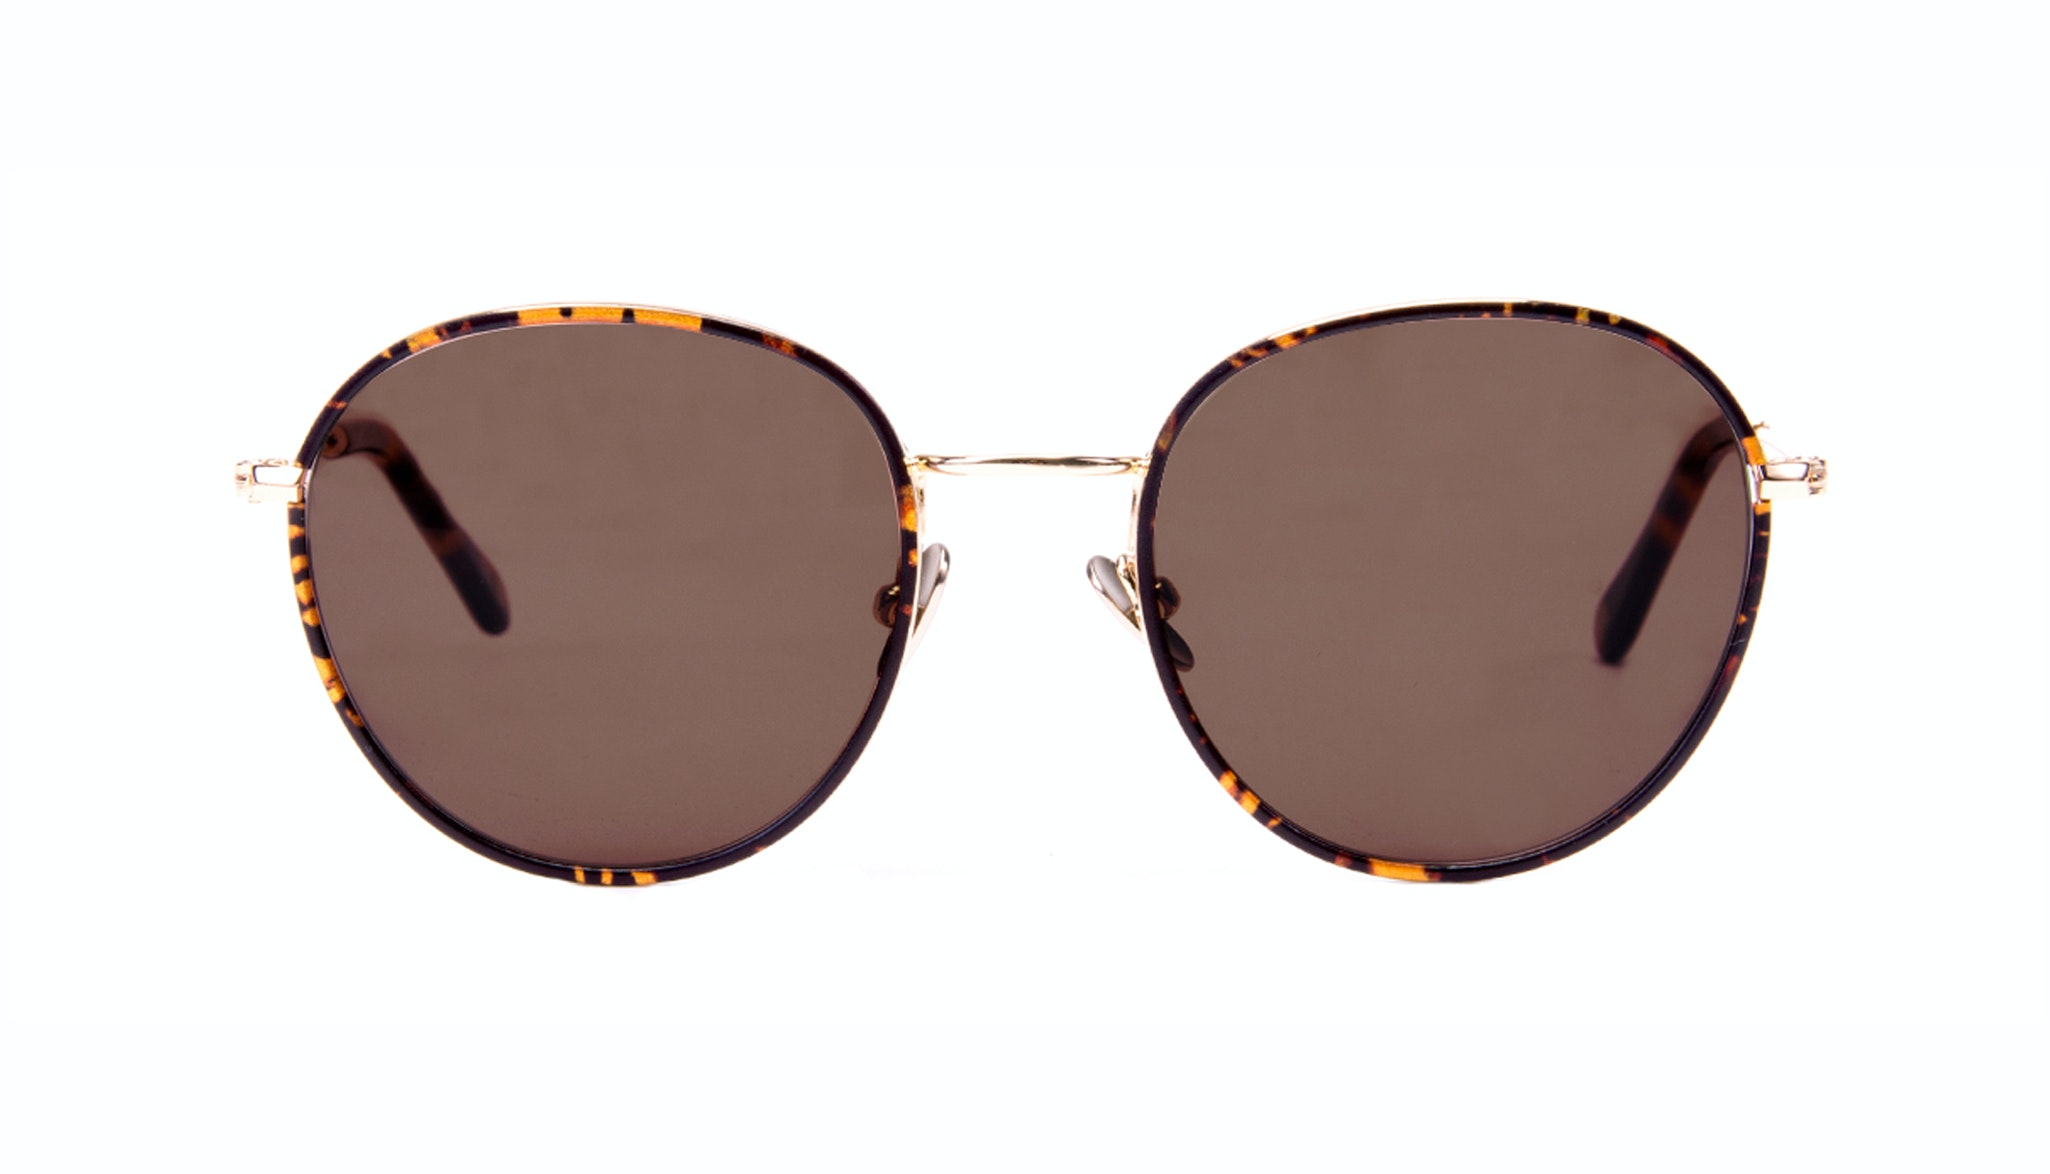 Affordable Fashion Glasses Aviator Round Sunglasses Women Subrosa Fauve